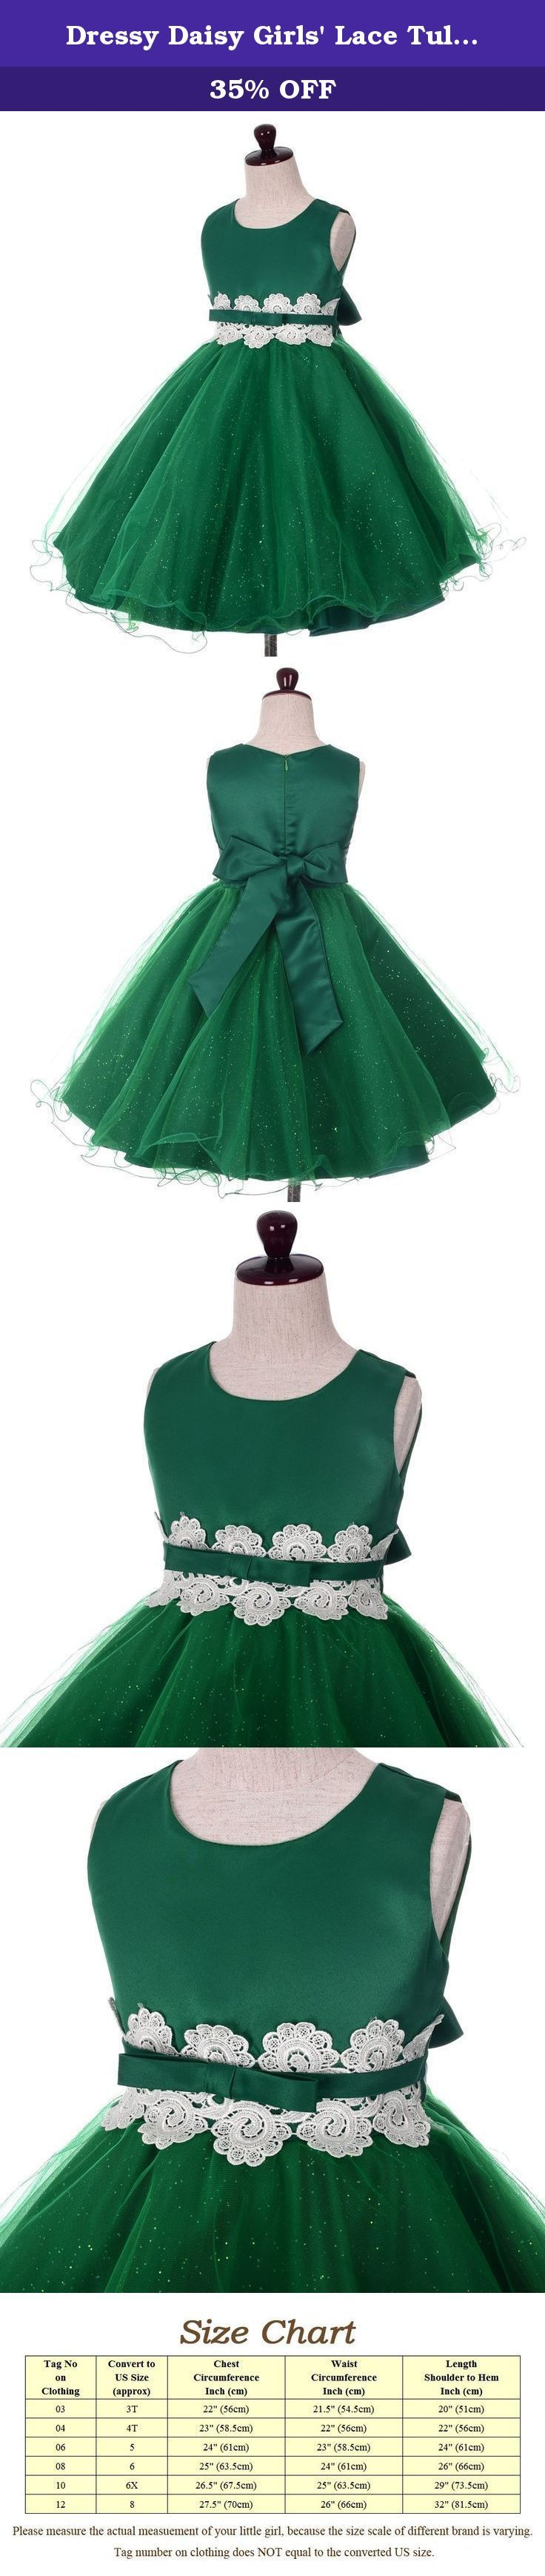 Dressy Daisy Girls' Lace Tulle Wedding Flower Girl Dresses Party Formal Occasion Kid Size 6 Green. ** Extra petticoat used in pictures ** It is great for any occasion such as wedding, party, birthday, holiday, and other special events. You and your little princess will love this dress. For the shipments fulfilled by seller, it takes 8-12 working days to deliver. For those buyers who are outside USA, it may takes a little longer time. We offer expedited delivery service as well. For…